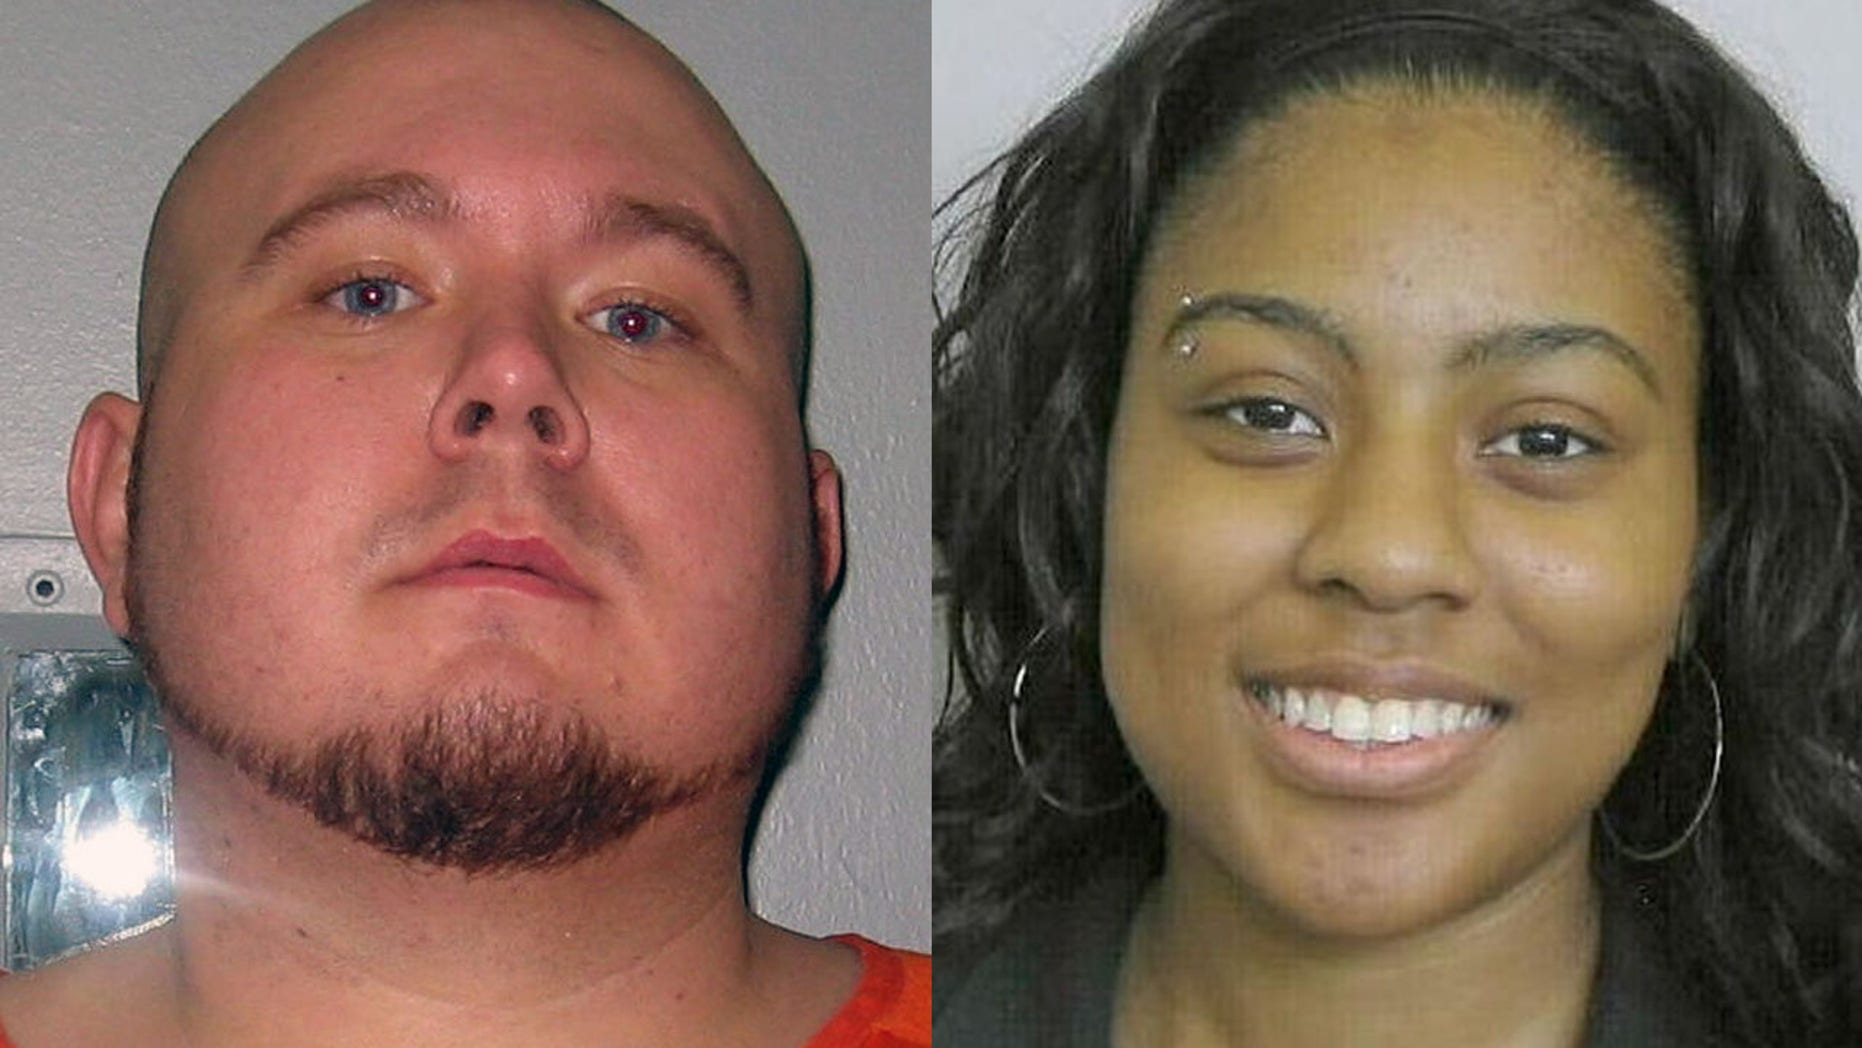 Joshua Keadle, left, is accused of killing Tyler Thomas after she disappeared in December 2010